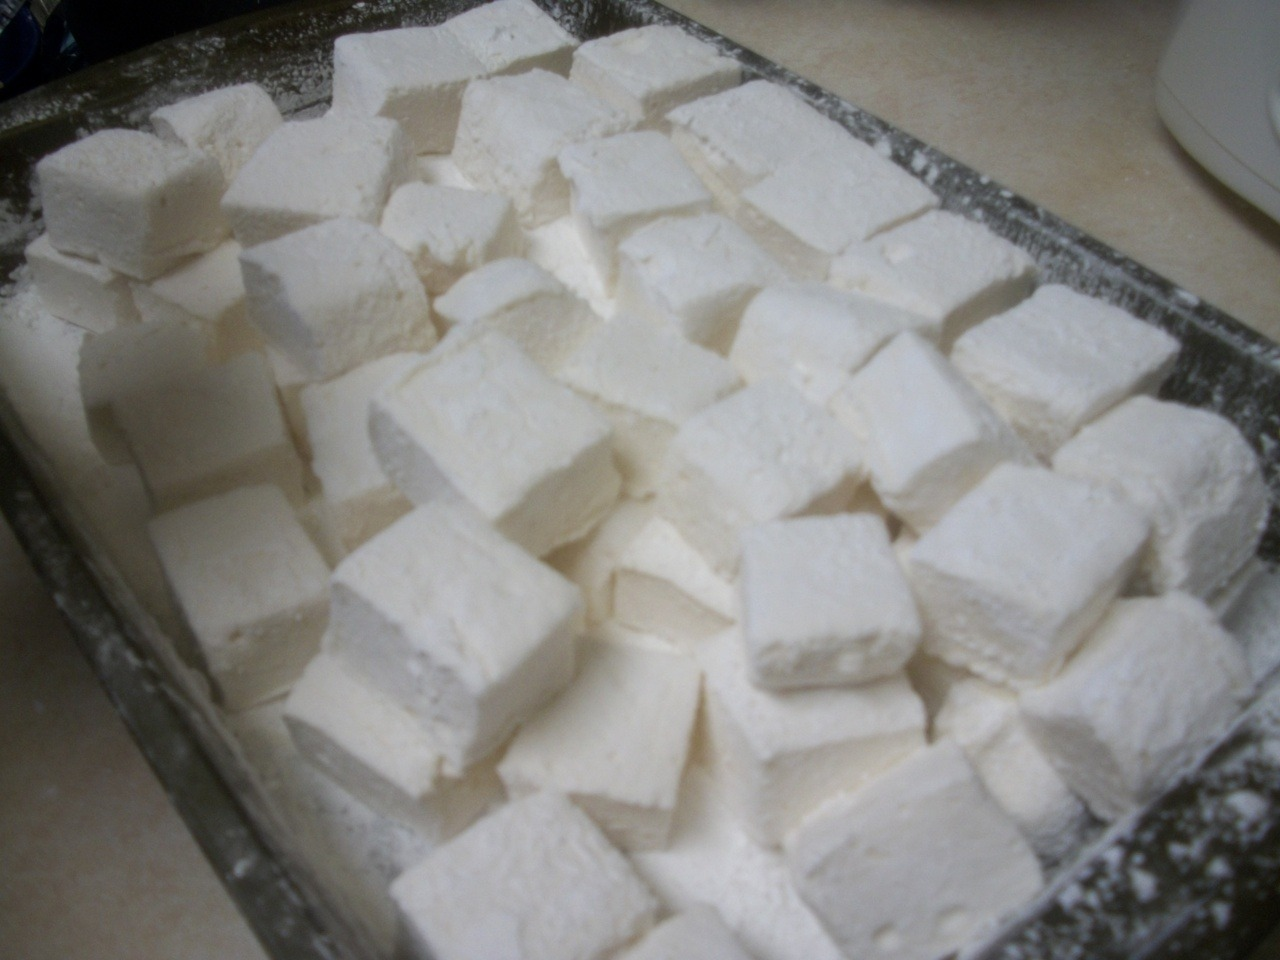 Marshmallows (from scratch) As I mentioned in my last post, anything extremely difficult, I try to make with Miki. Together we are a successful machine. We found a recipe on good ol' Smitten Kitchen. She had a hard time with it so it scared Miki and I to death because she's a pro. These were soo hard to make, not because of the possibility to screw up, but because you have so many things happening at once. If you miss a step or don't do a step fast enough, you're screwed. It was nice to have 4 hands helping out with this recipe. That being said, they are DELICIOUS! I now appreciate a marshmallow so much more that I will thank the factories that make them because there is no way I'm going to meltdown this marshmallows and make rice krispies treats with them. They are soo soft and fluffy. They have a strong vanilla taste, I bet they would taste amazing with like peppermint extract of other flavors. INGREDIENTS About 1 cup confectioners' sugar 3 1/2 envelopes (2 tablespoons plus 2 1/2 teaspoons) unflavored gelatin 1 cup cold water, divided 2 cups granulated sugar (cane sugar worked just fine) 1/2 cup light corn syrup 1/4 teaspoon salt 2 large egg whites or reconstituted powdered egg whites 1 tablespoon vanilla  Directions Oil bottom and sides of a 13- by 9- by 2-inch rectangular metal baking pan and dust bottom and sides with some confectioners' sugar (by dusting I mean a generous amount of sugar). In bowl of a standing electric mixer or in a large bowl sprinkle gelatin over 1/2 cup cold cold water, and let stand to soften. In a 3-quart heavy saucepan cook granulated sugar, corn syrup, second 1/2 cup of cold water, and salt over low heat, stirring with a wooden spoon, until sugar is dissolved.  Increase heat to moderate and boil mixture, without stirring, until a candy or digital thermometer registers 240°F, about 12 minutes.  Remove pan from heat and pour sugar mixture over gelatin mixture, stirring until gelatin is dissolved. With standing or a hand-held electric mixer beat mixture on high speed until white, thick, and nearly tripled in volume, about six minutes if using standing mixer or about 10 minutes if using hand-held mixer. (Some reviewers felt this took even longer with a hand mixer, but still eventually whipped up nicely.) In separate medium bowl with cleaned beaters beat egg whites until they just hold stiff peaks. (This took forever! I grew a few muscles during this) Beat whites and vanilla (or your choice of flavoring) into sugar mixture until just combined.  Pour mixture into baking pan and don't fret if you don't get it all out.  Sift 1/4 cup confectioners sugar evenly over top.  Chill marshmallow, uncovered, until firm, at least three hours, and up to one day. Run a thin knife around edges of pan and invert pan onto a large cutting board. Lifting up one corner of inverted pan, with fingers loosen marshmallow and ease onto cutting board.  With a large knife trim edges of marshmallow and cut marshmallow into roughly one-inch cubes.   Sift remaining confectioners' sugar back into your now-empty baking pan, and roll the marshmallows through it, on all six sides, before shaking off the excess and packing them away.